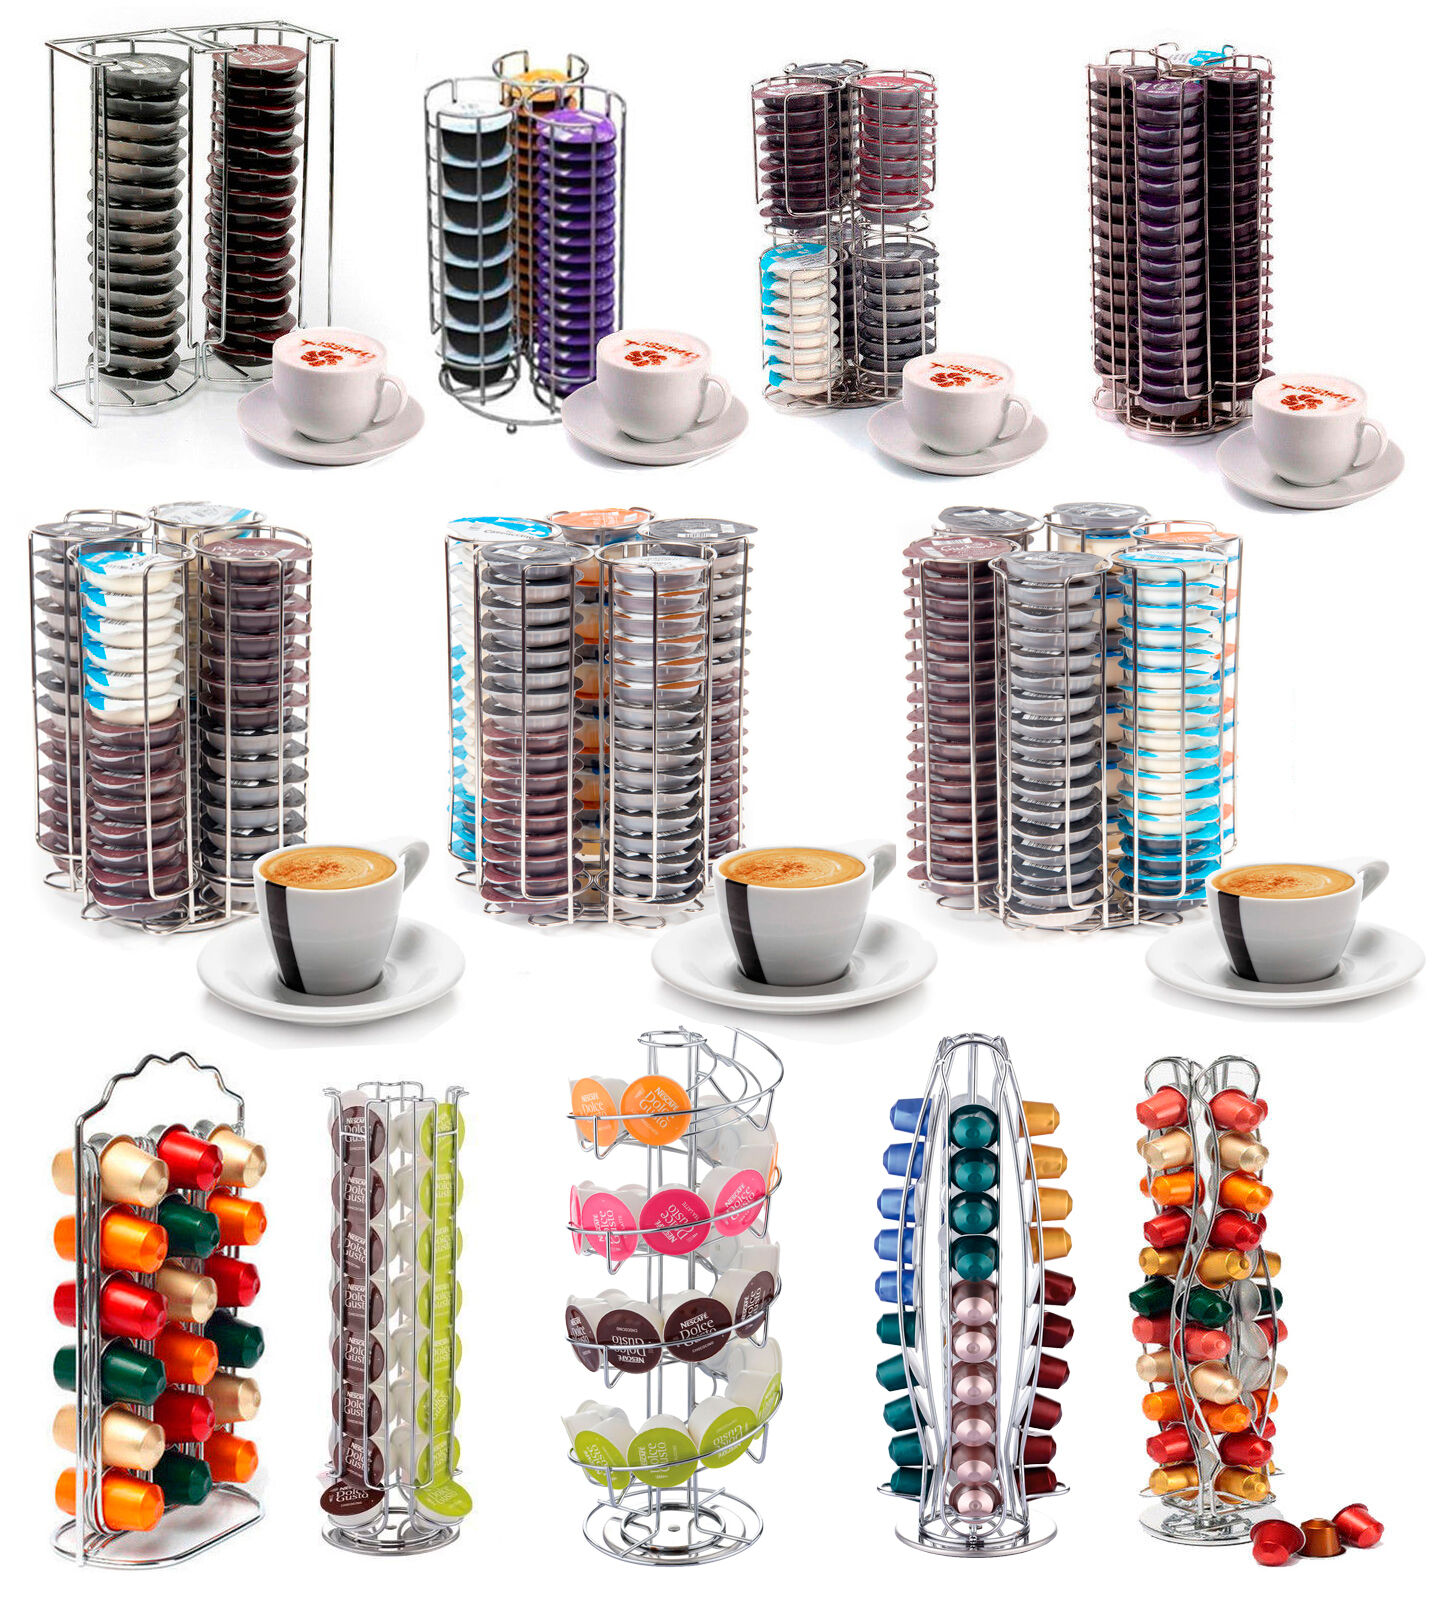 porte capsules caf tournant pour tassimo dolce gusto nespresso. Black Bedroom Furniture Sets. Home Design Ideas